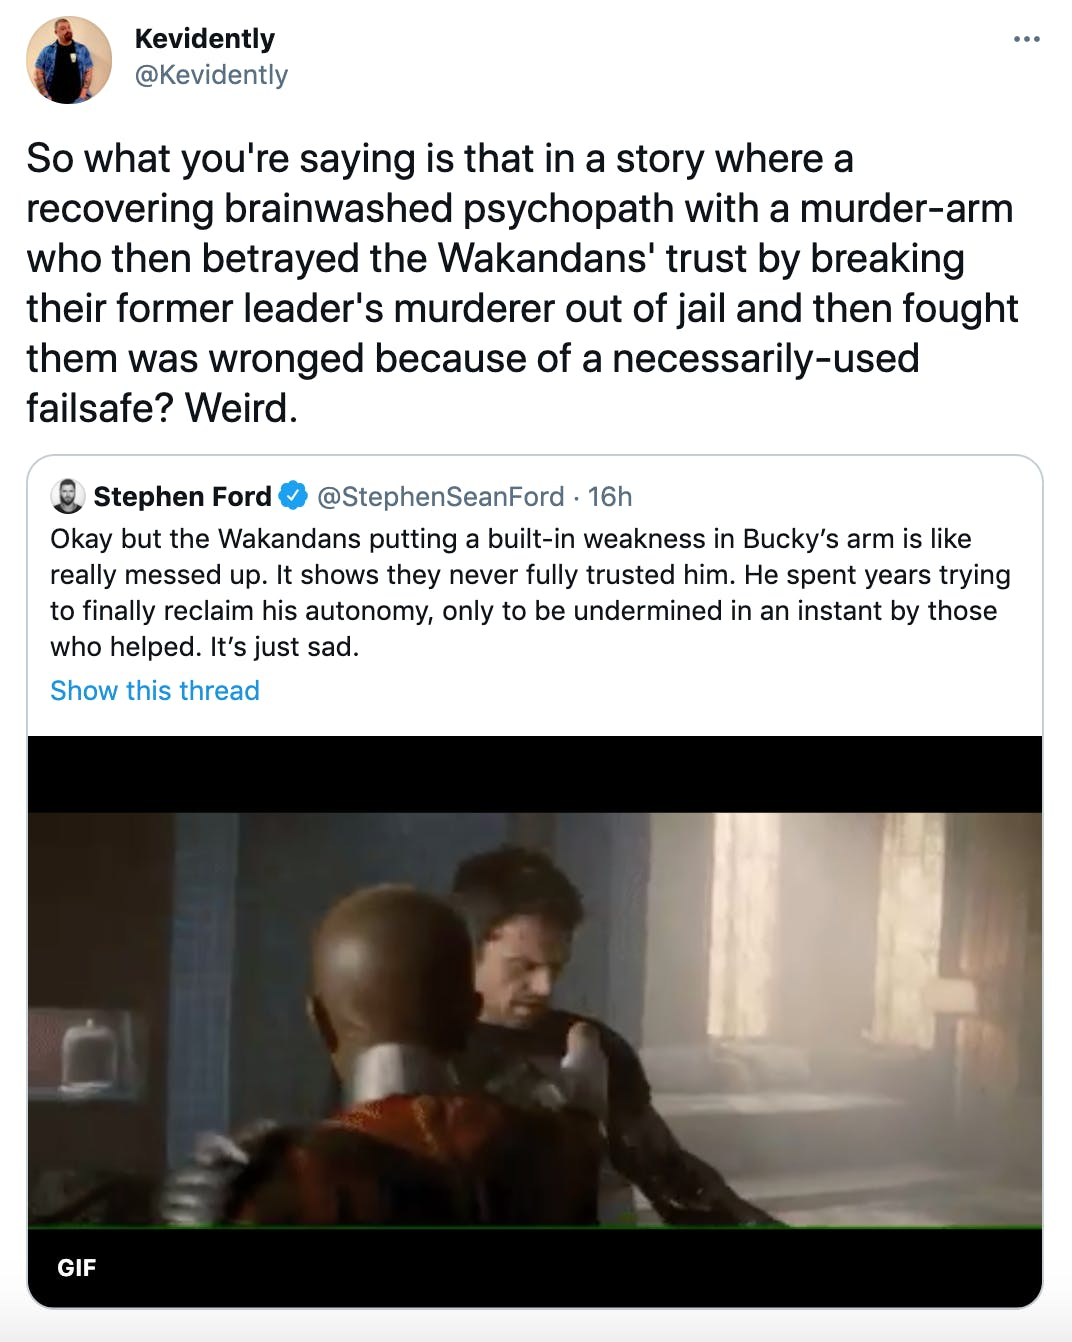 So what you're saying is that in a story where a recovering brainwashed psychopath with a murder-arm who then betrayed the Wakandans' trust by breaking their former leader's murderer out of jail and then fought them was wronged because of a necessarily-used failsafe? Weird.